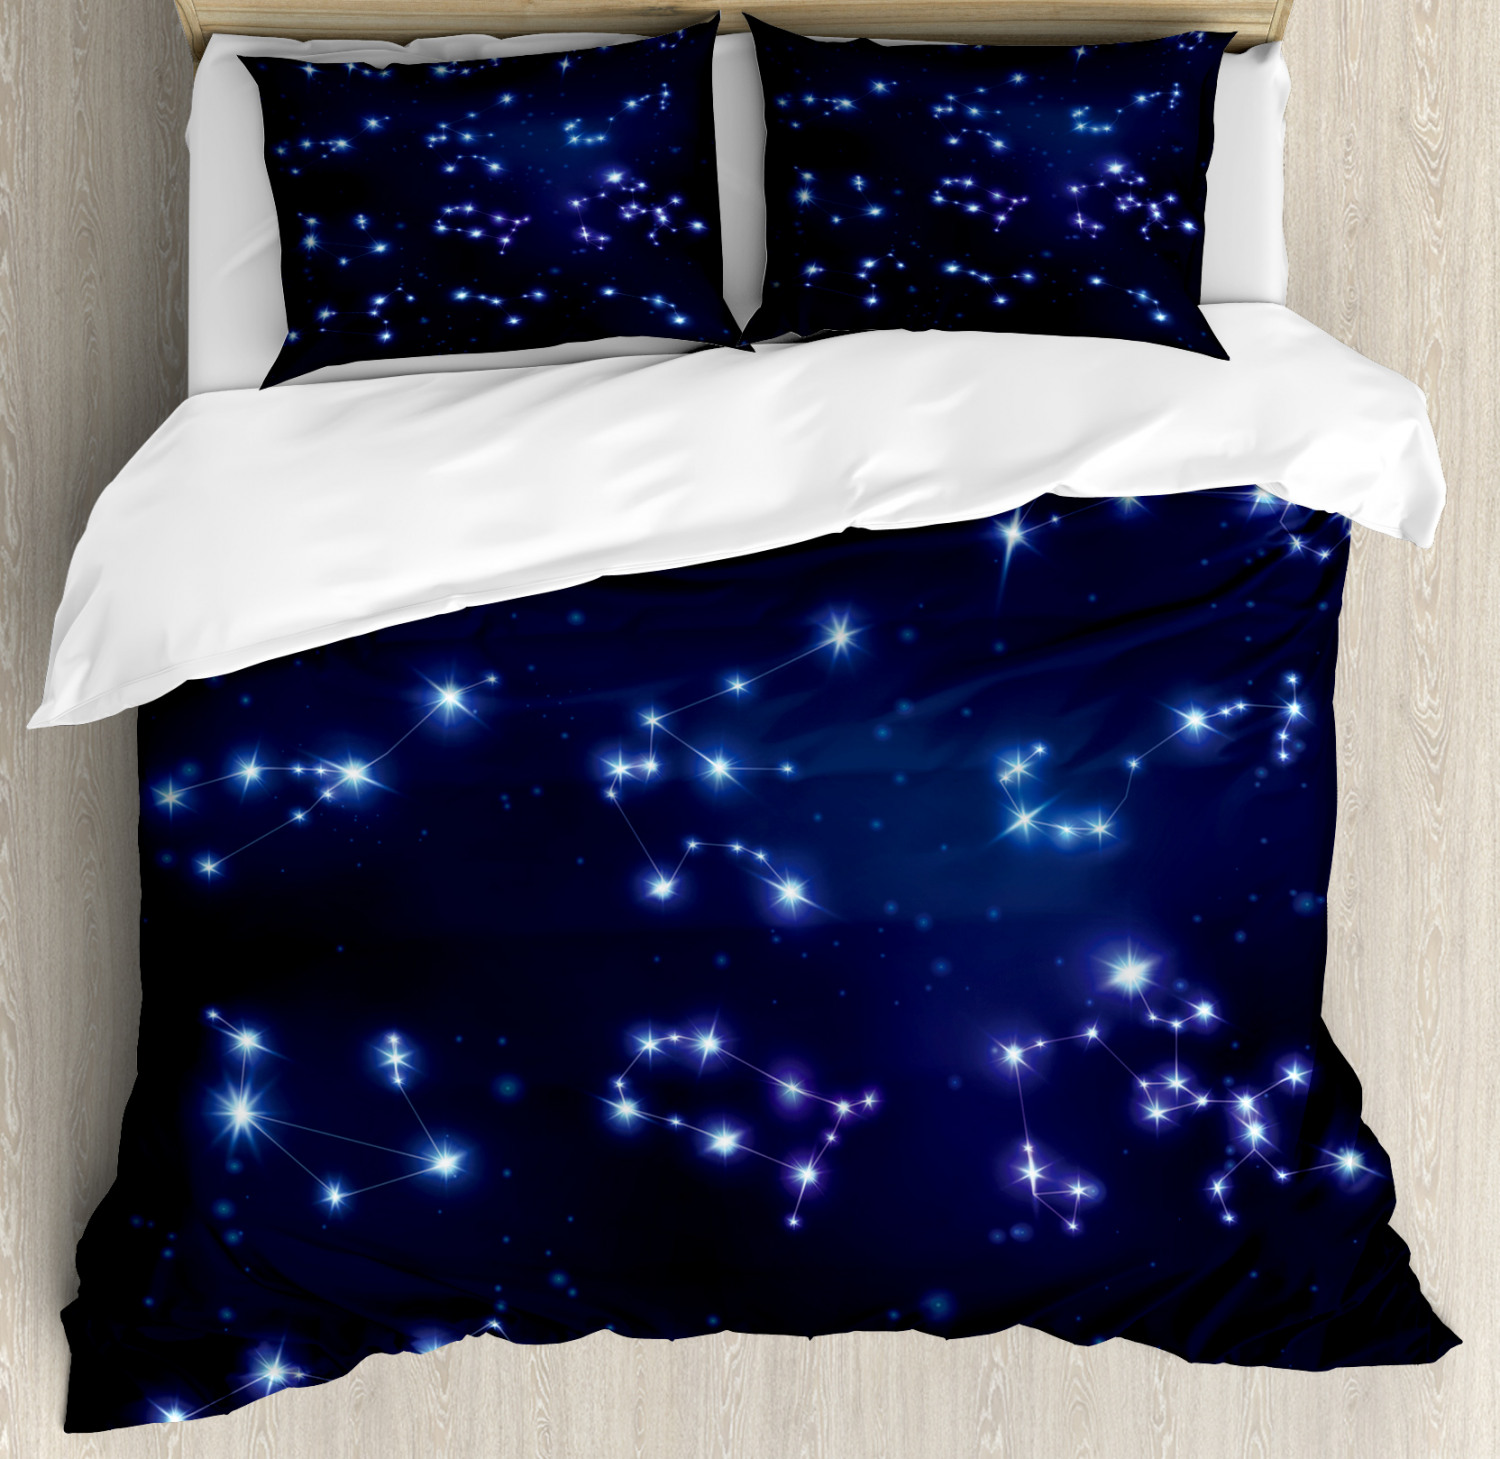 Constellation Duvet Cover Set with Pillow Shams Galaxy and Signs Print